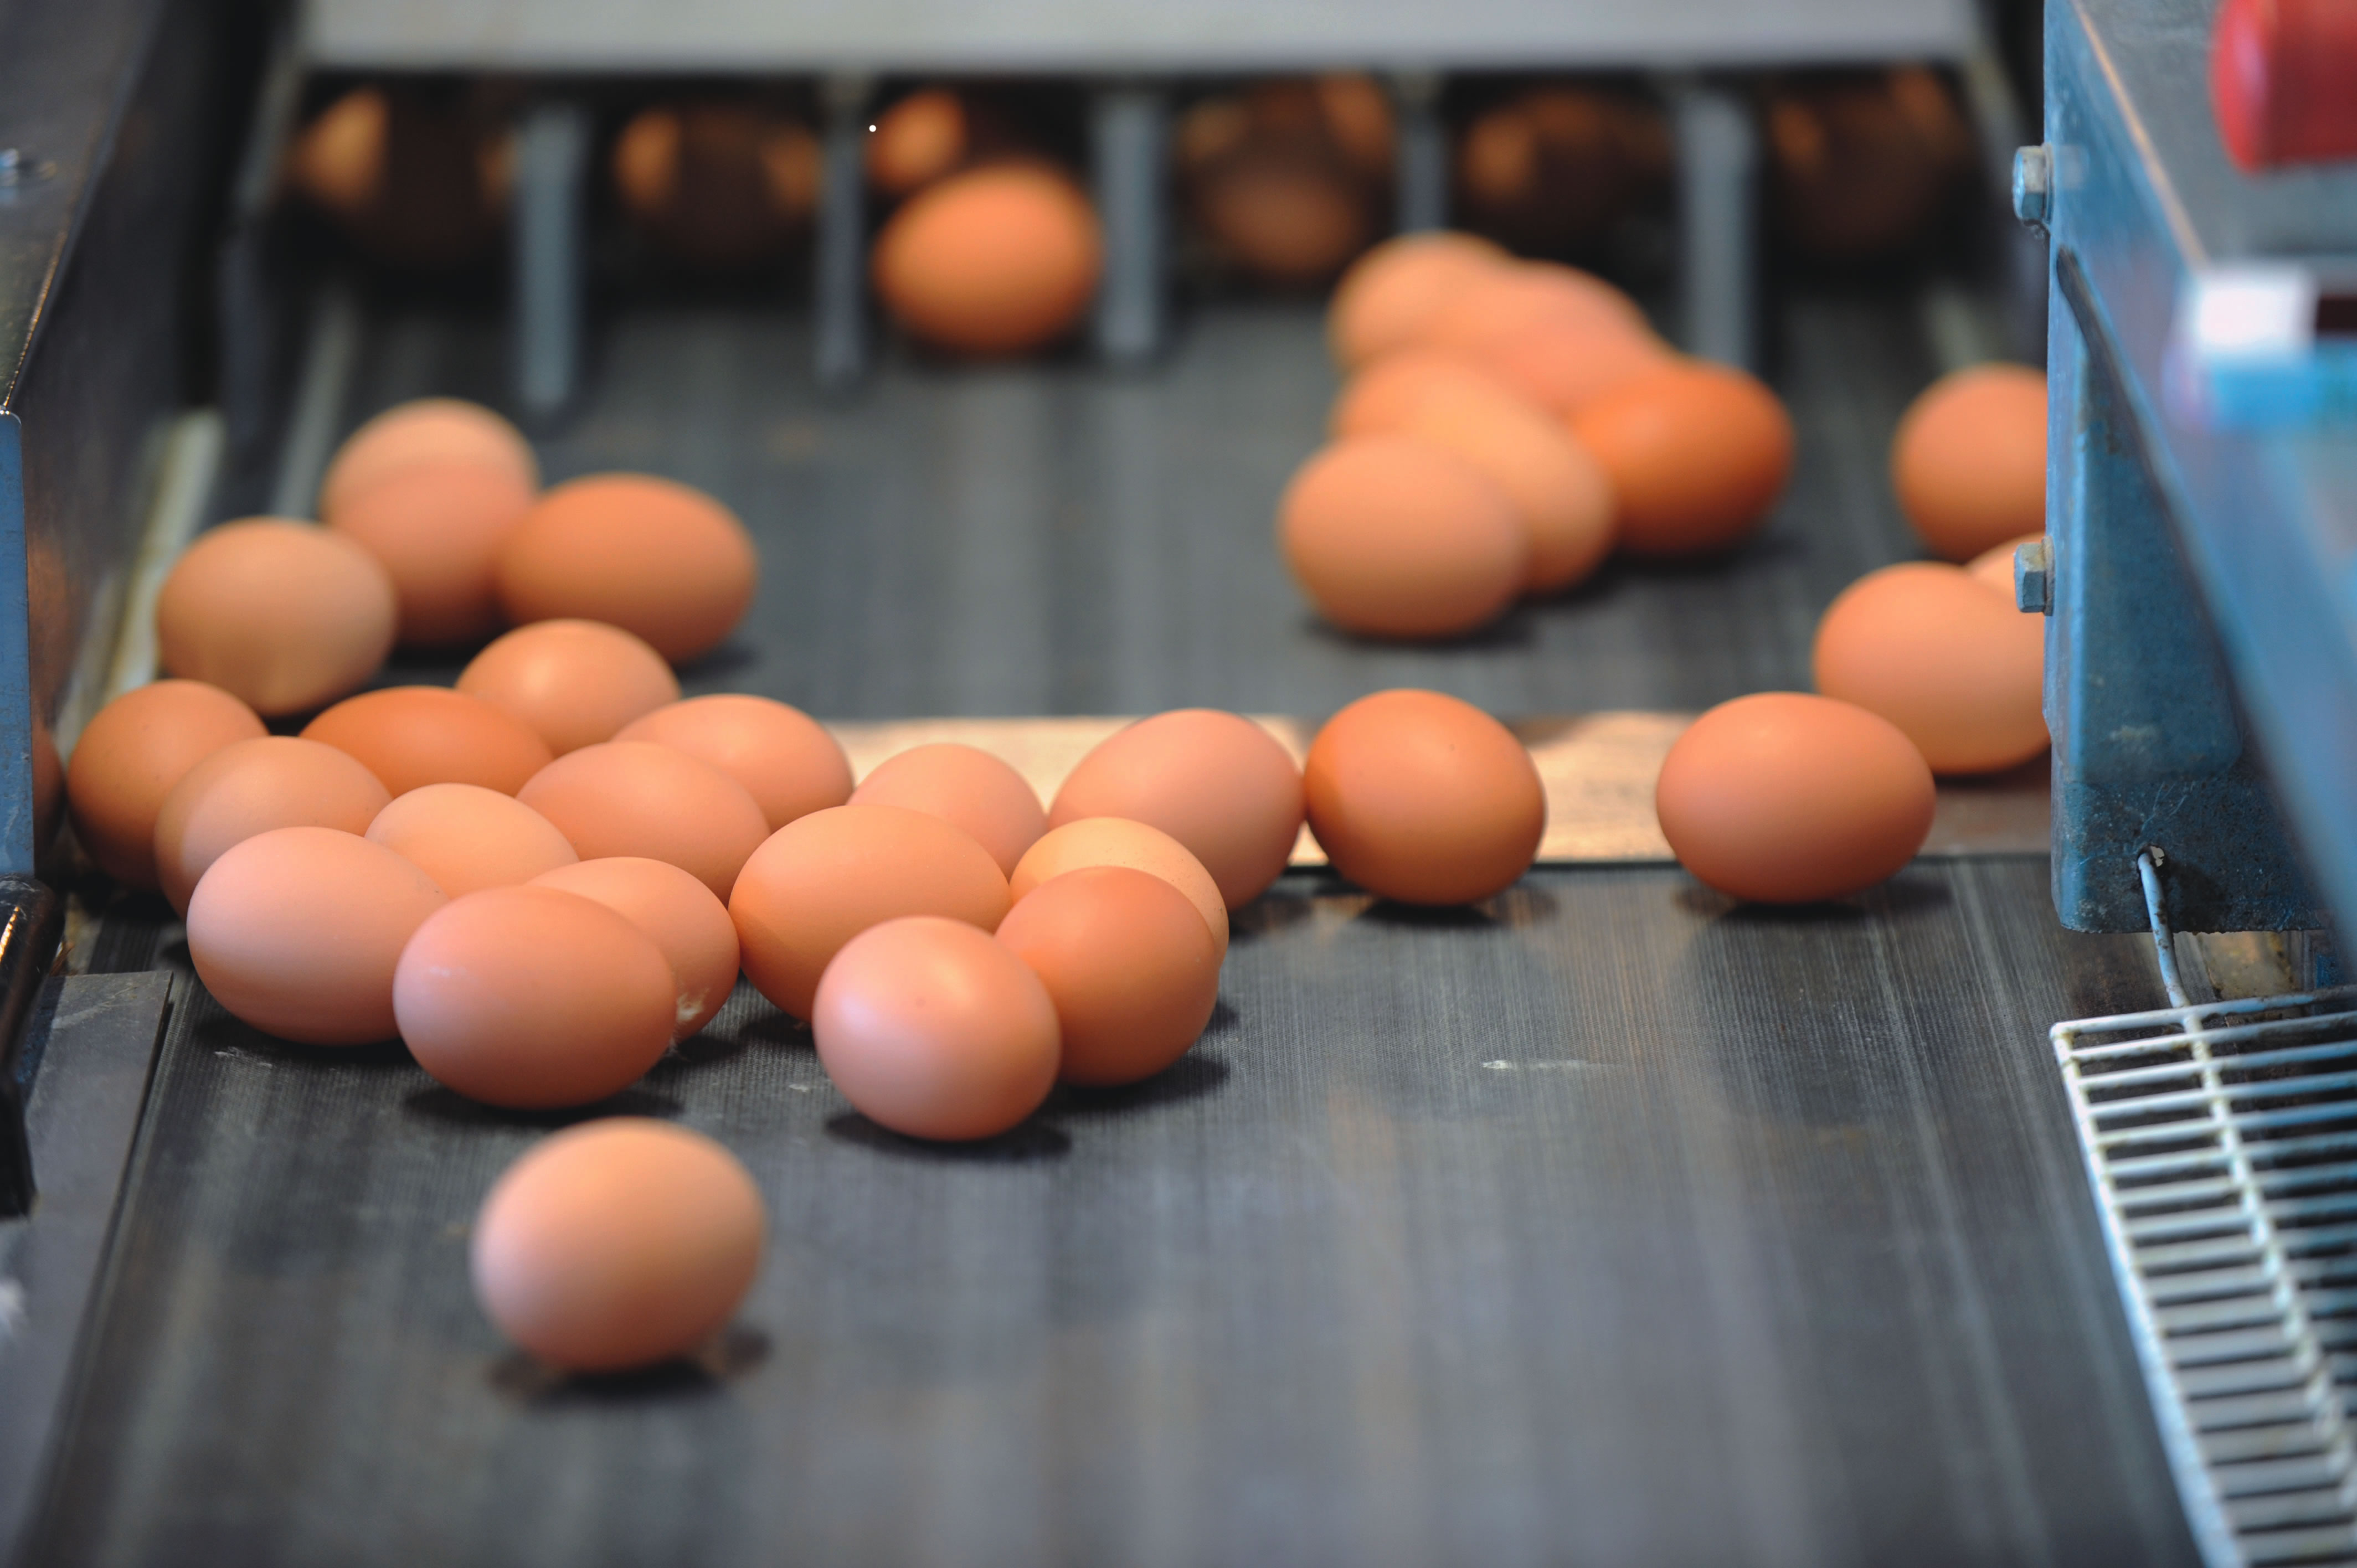 Analysis: Brexit – the impact on poultry incomes | Poultry News